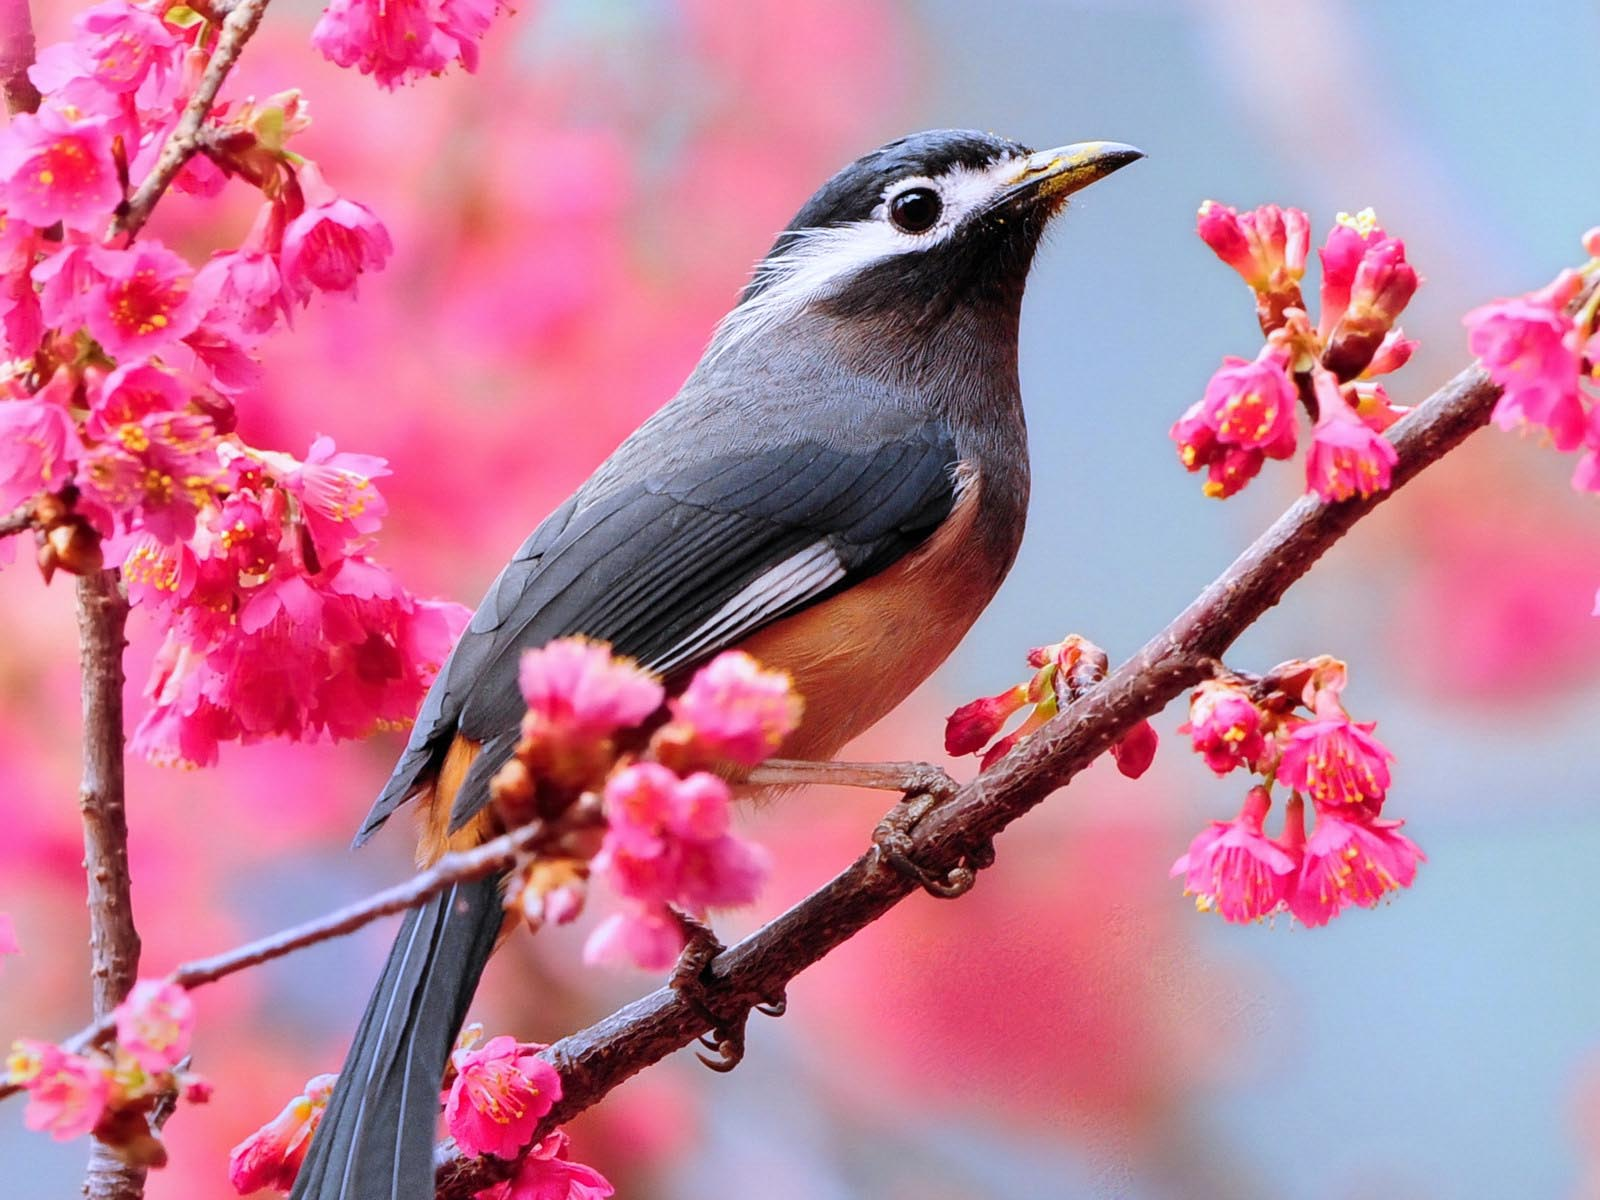 Birds Wallpaper: Love Birds Desktop Wallpapers #2172 |.Ssofc